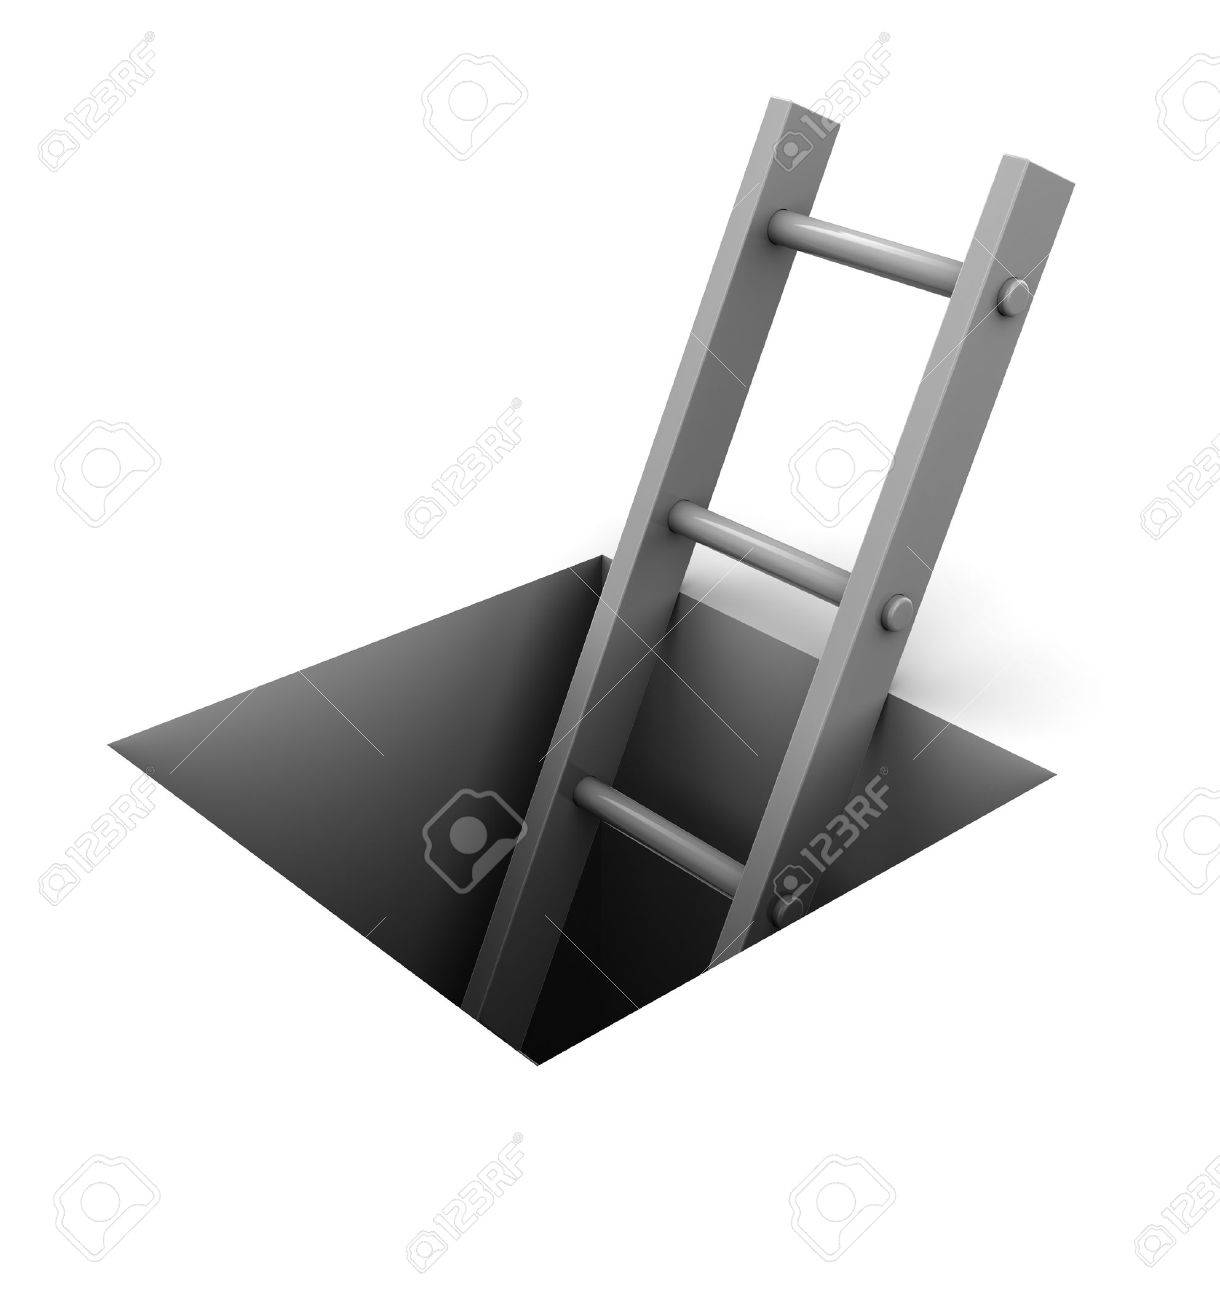 3d illustration of ladder in square hole over white background Stock Photo - 9351135